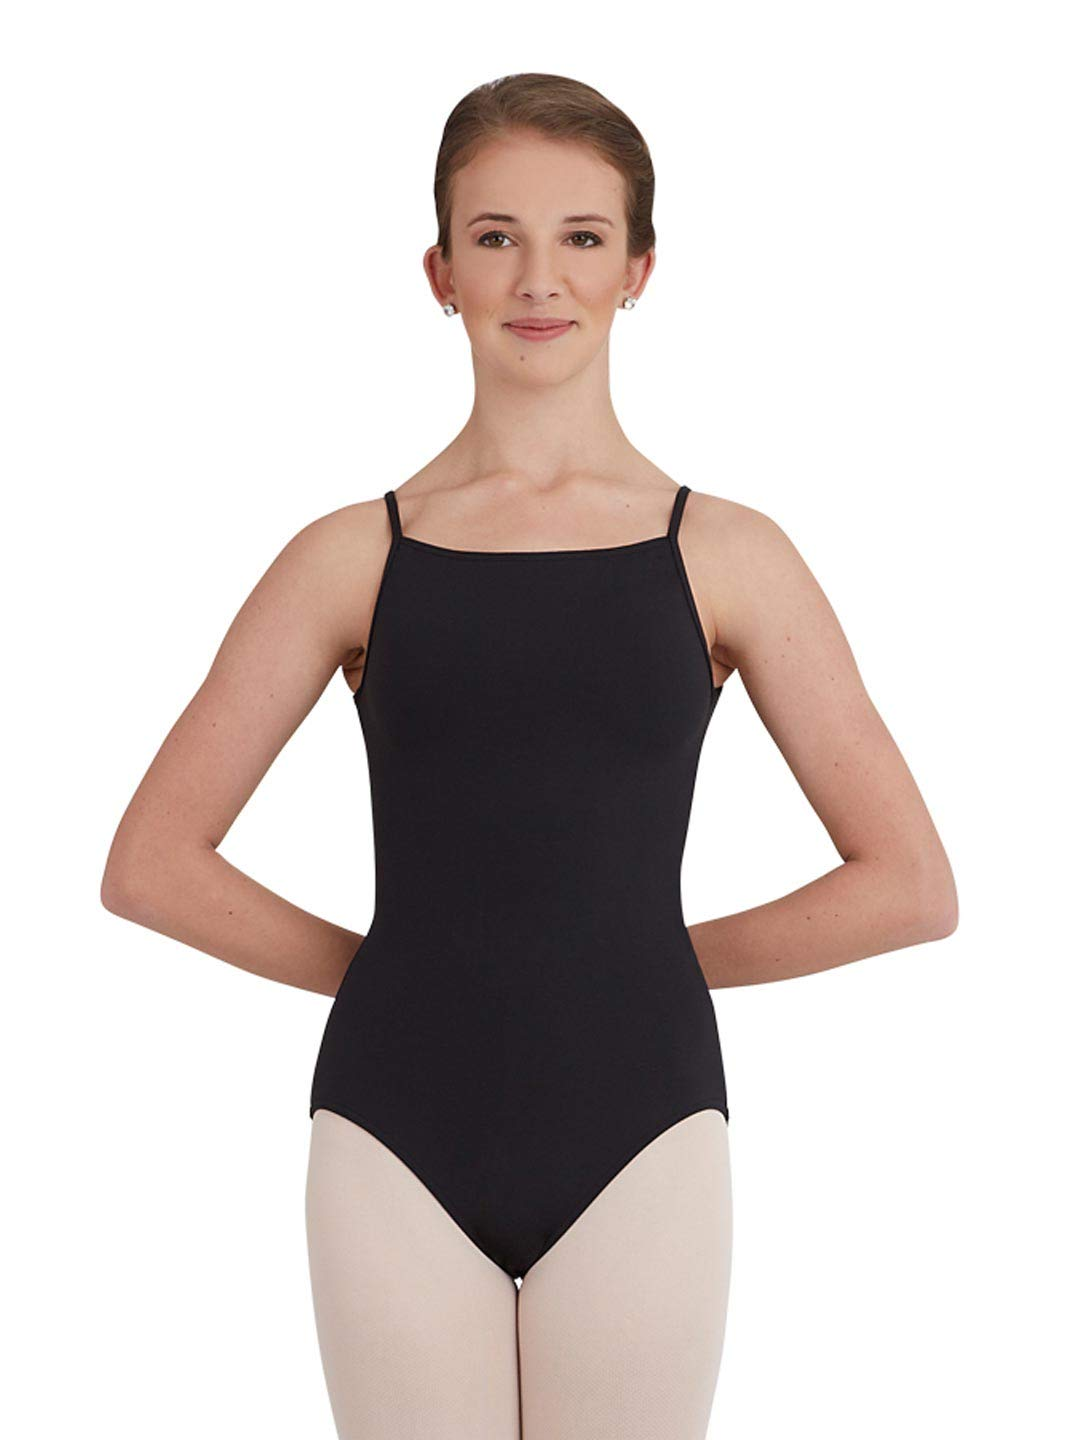 Capezio Sunburst Mock Turtle Leotard - Size Large, Black by Capezio